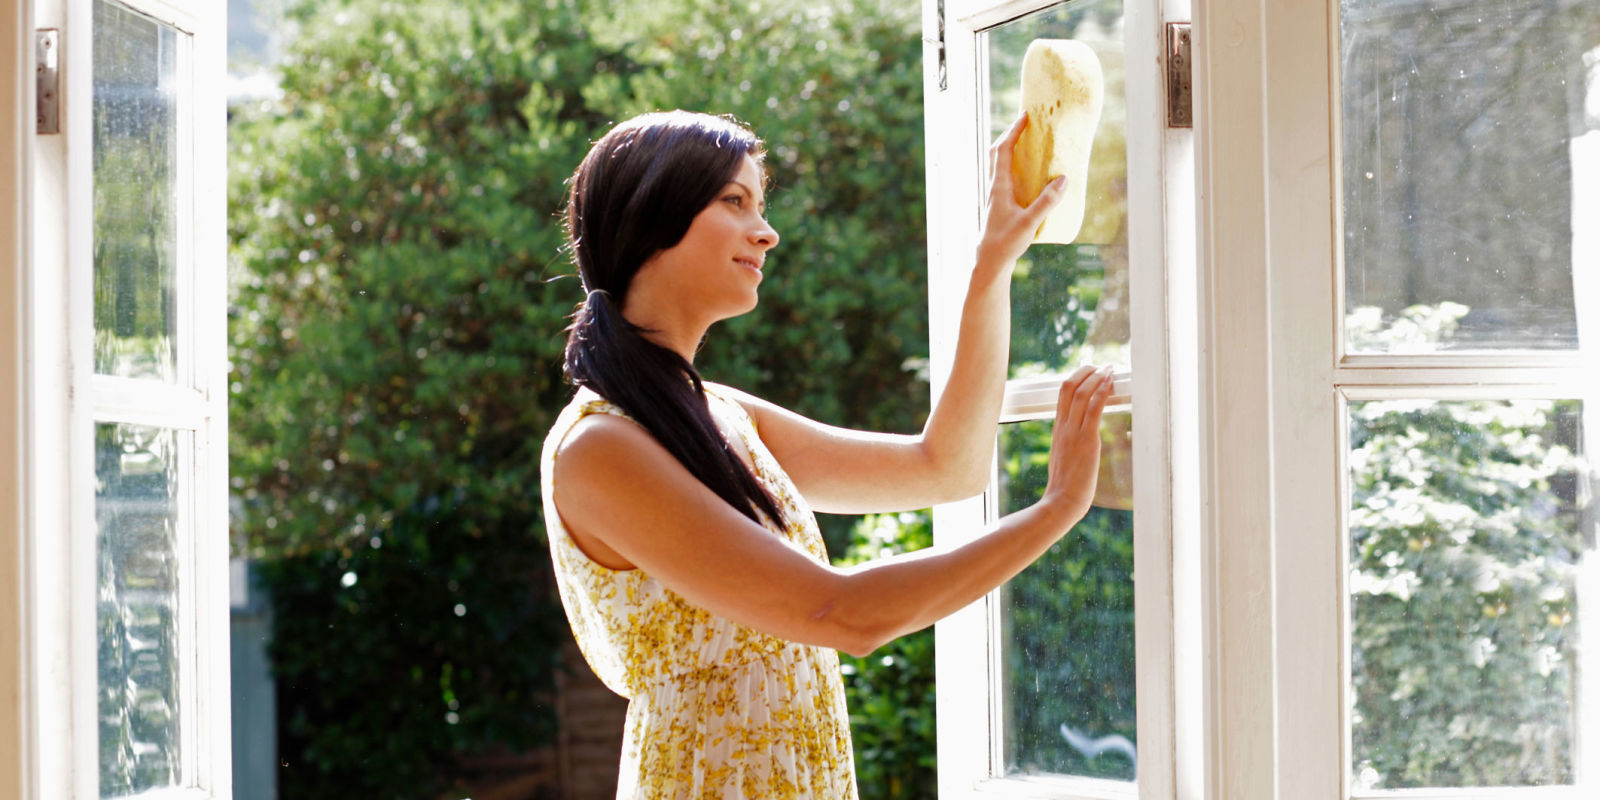 landscape-1435163179-window-cleaning-sunny.jpg